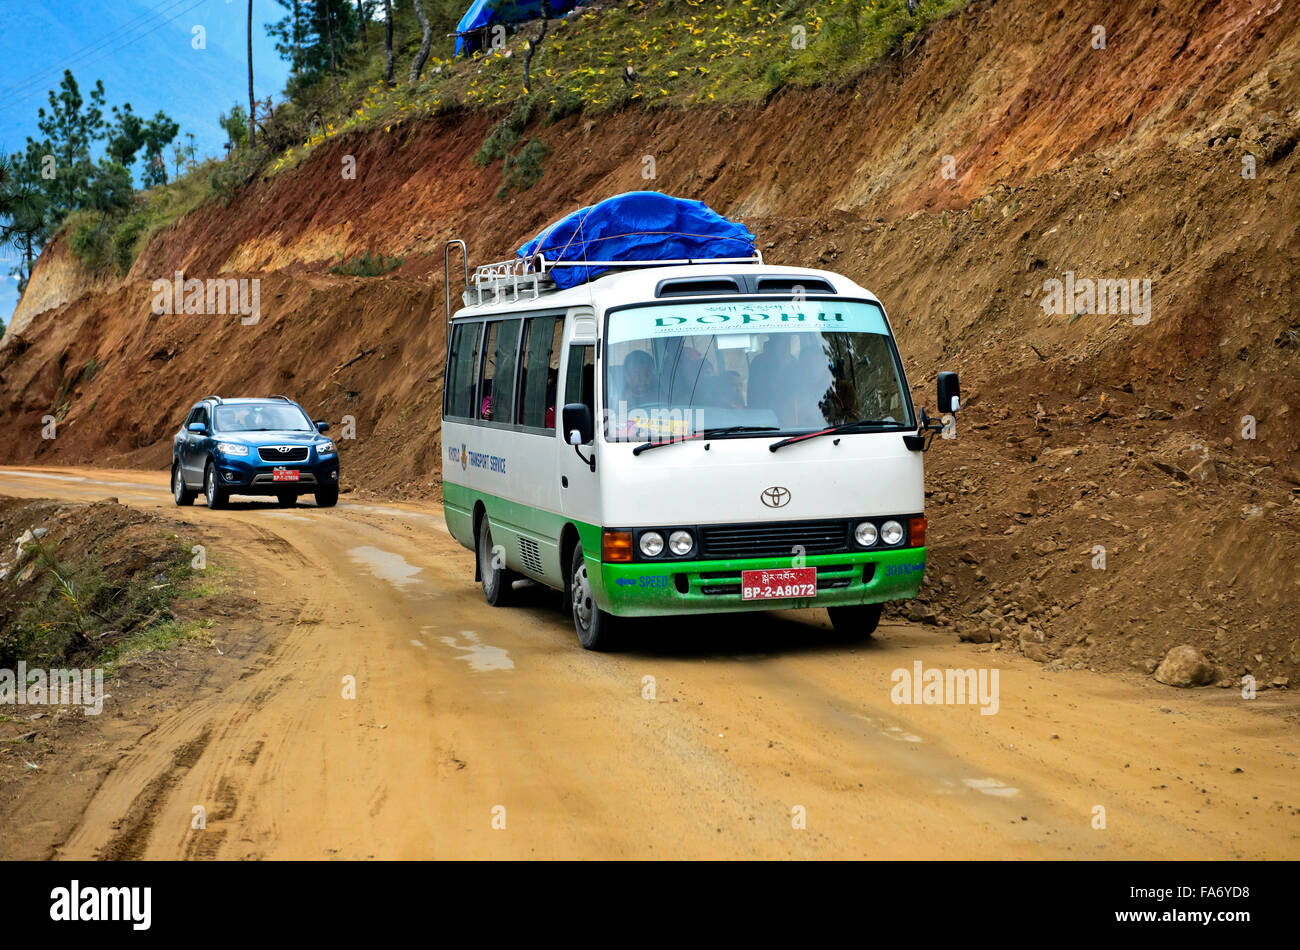 Le transport par autobus local sur l'autoroute, le Bhoutan Thimphu Punakha Photo Stock